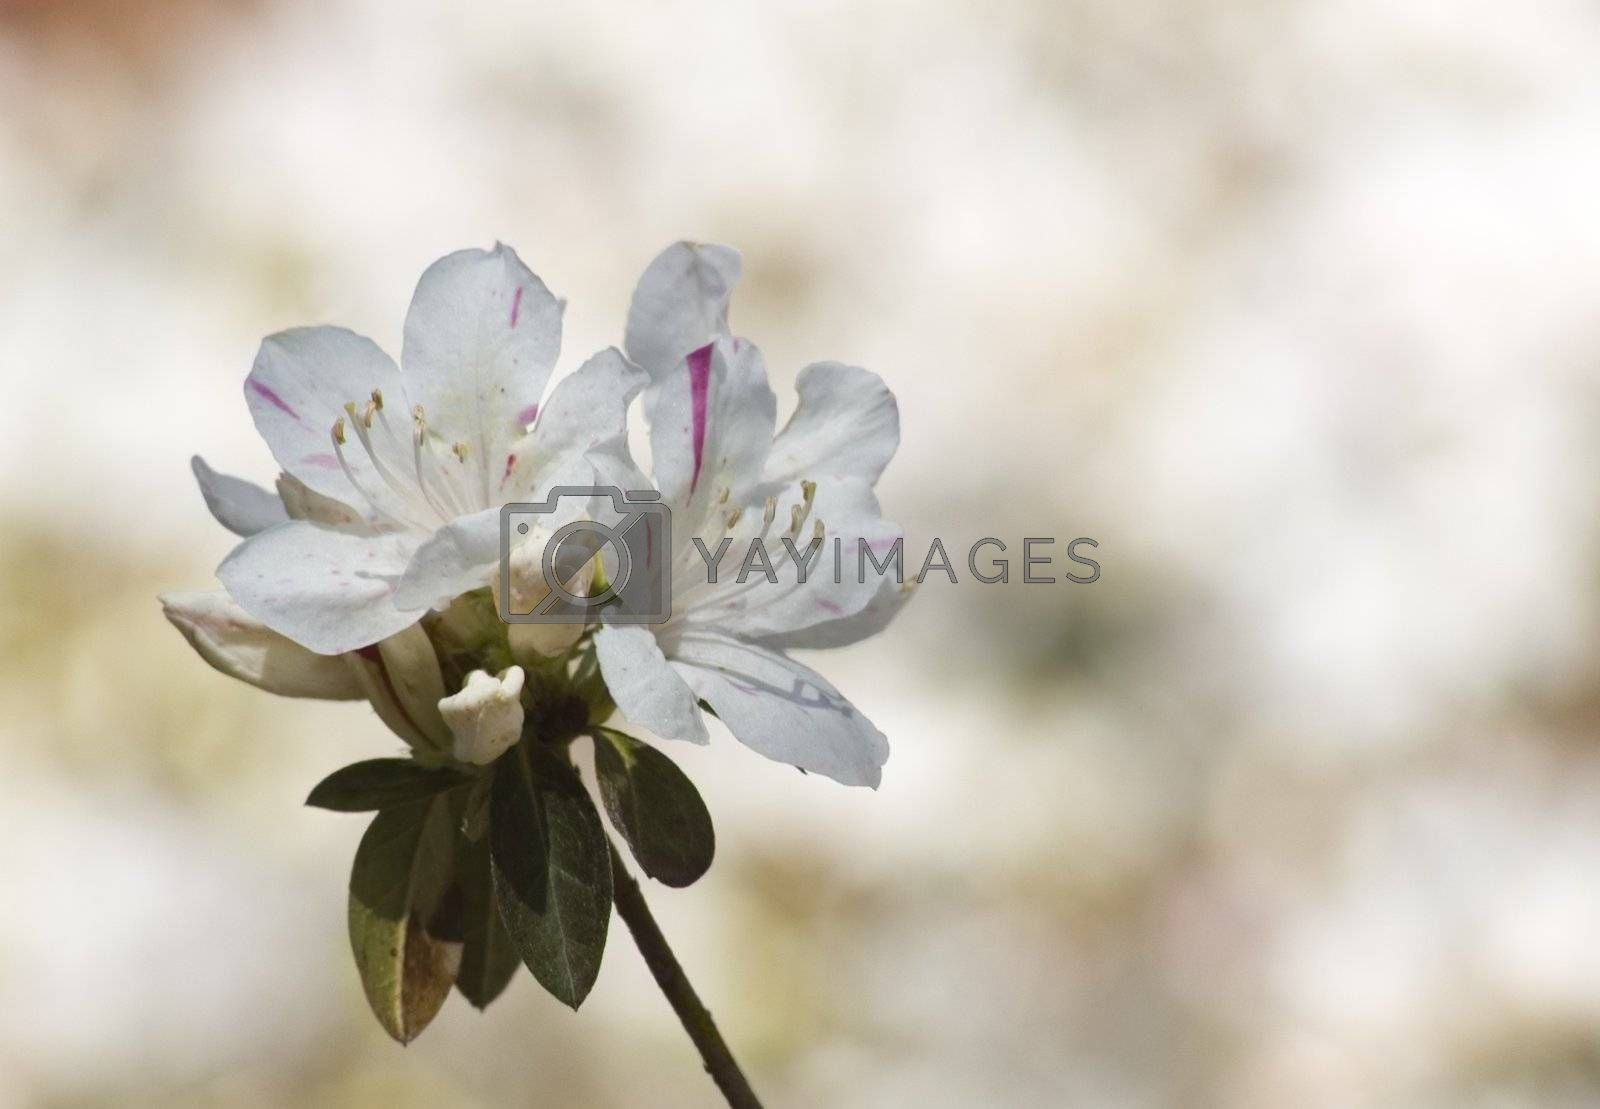 Single azalea blossom in focus against a blurred garden background.